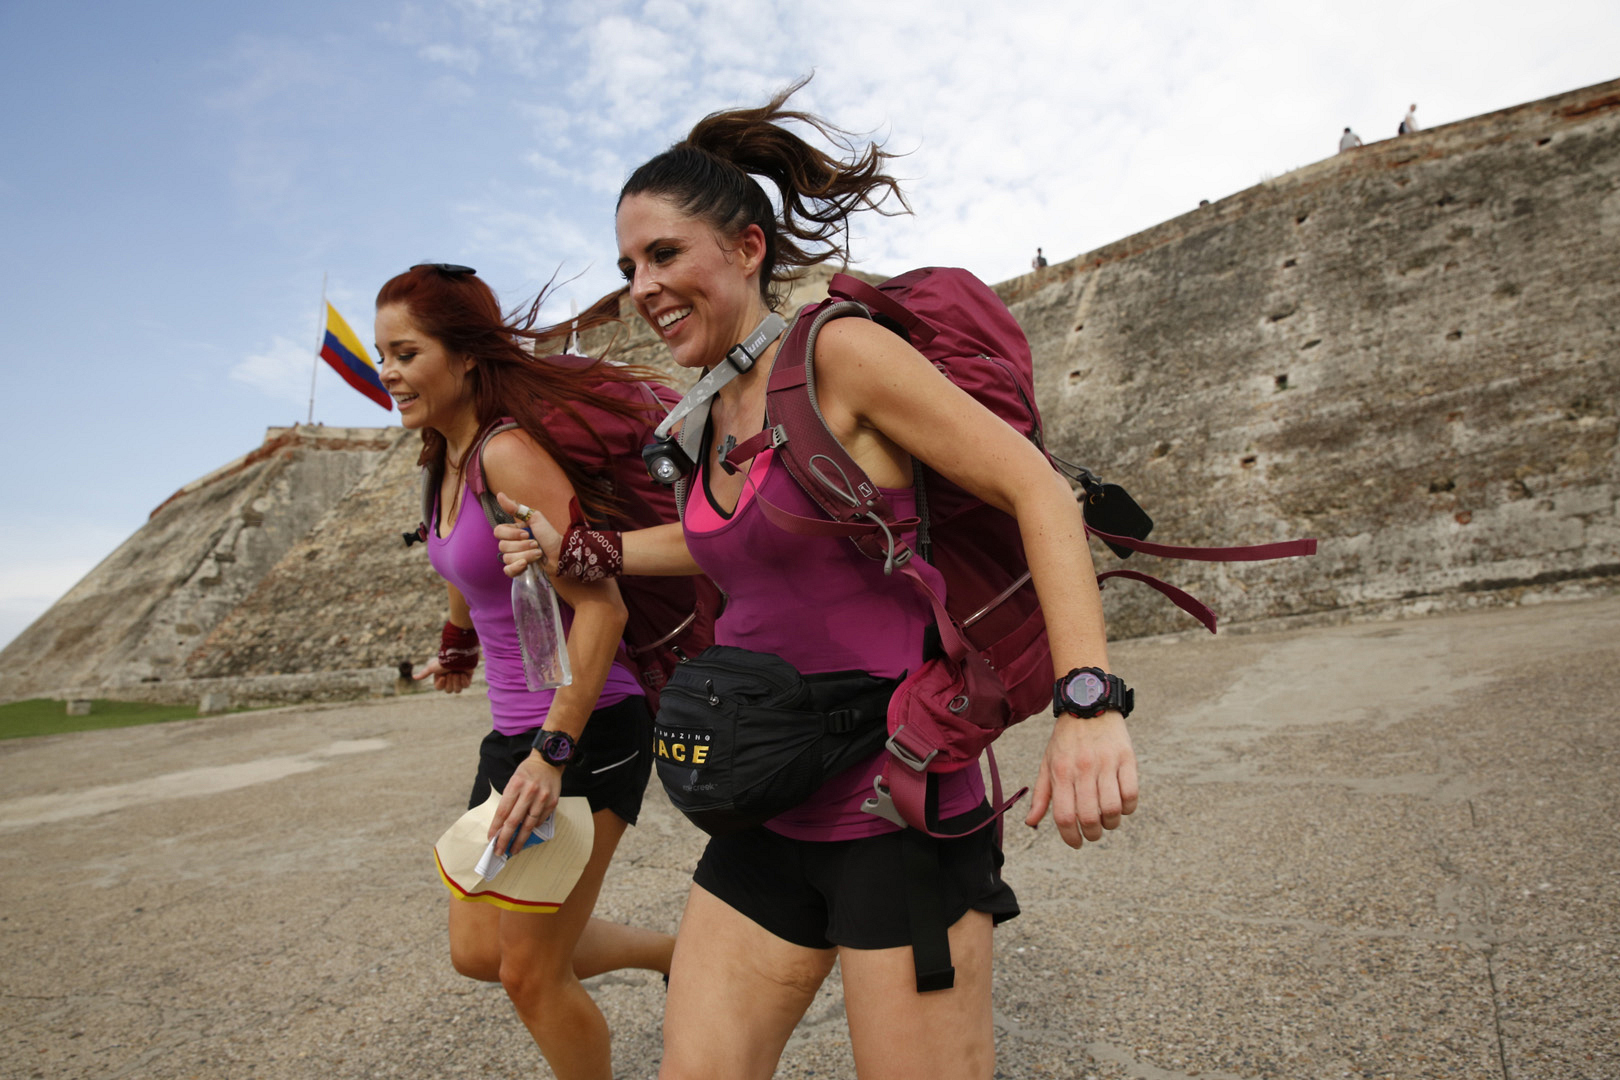 Erin and Joslyn pump themselves up before exploring the catacombs.